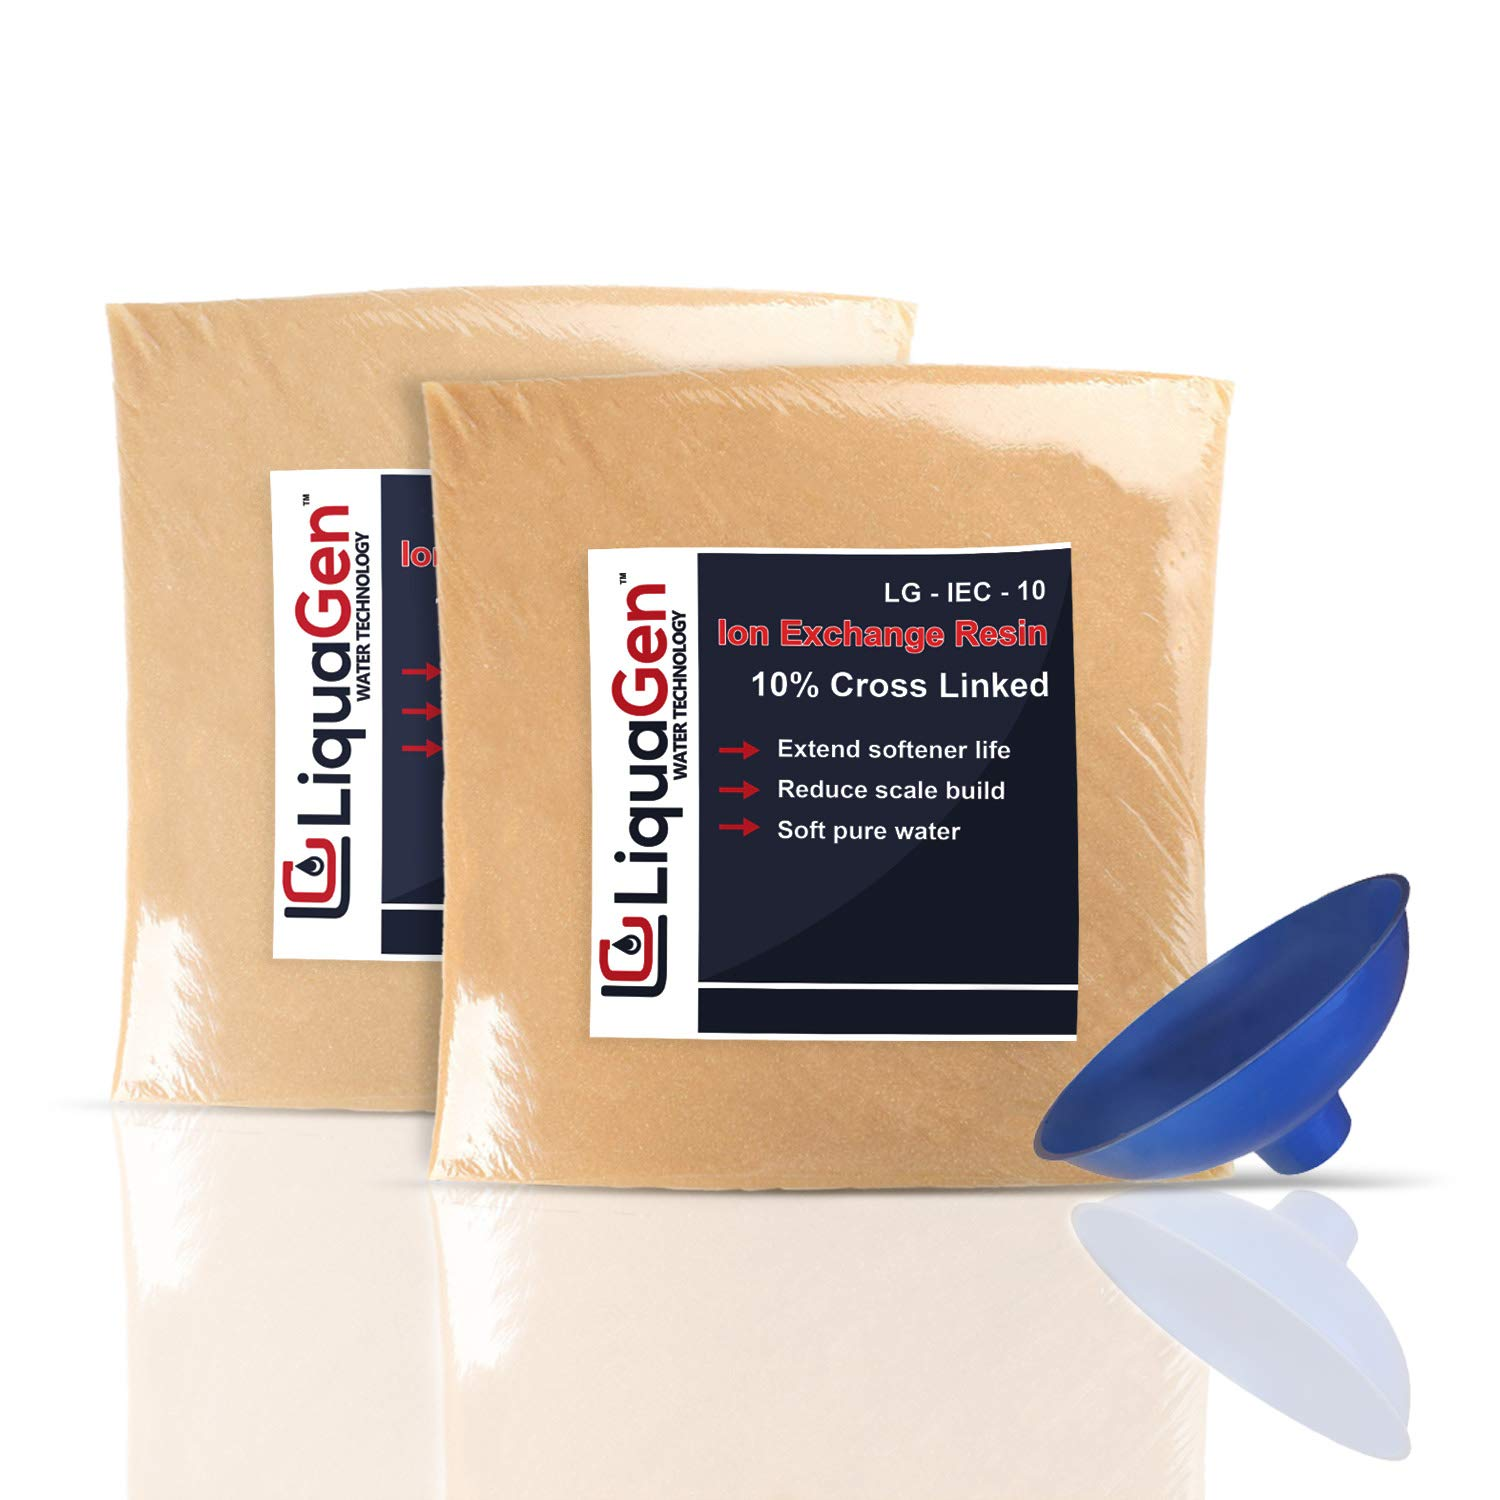 1.5 Cubic Feet of Water Softening Ion Exchange Resin Cation + Resin Loading Funnel by LiquaGen